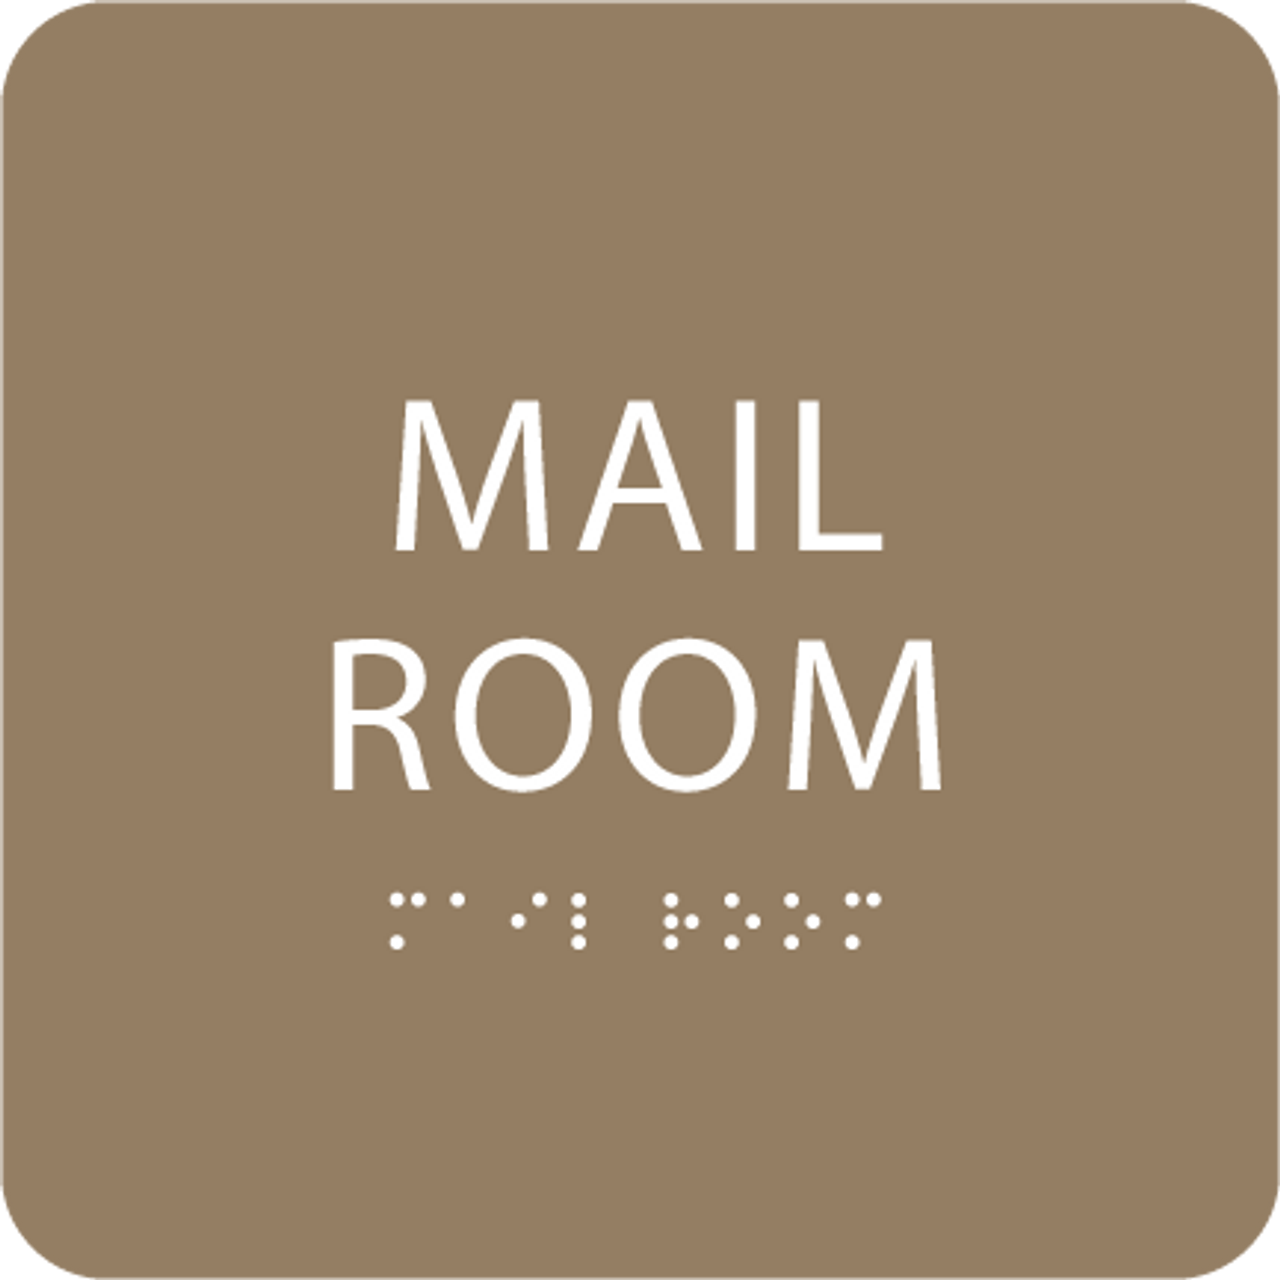 Brown Mail Room ADA Sign